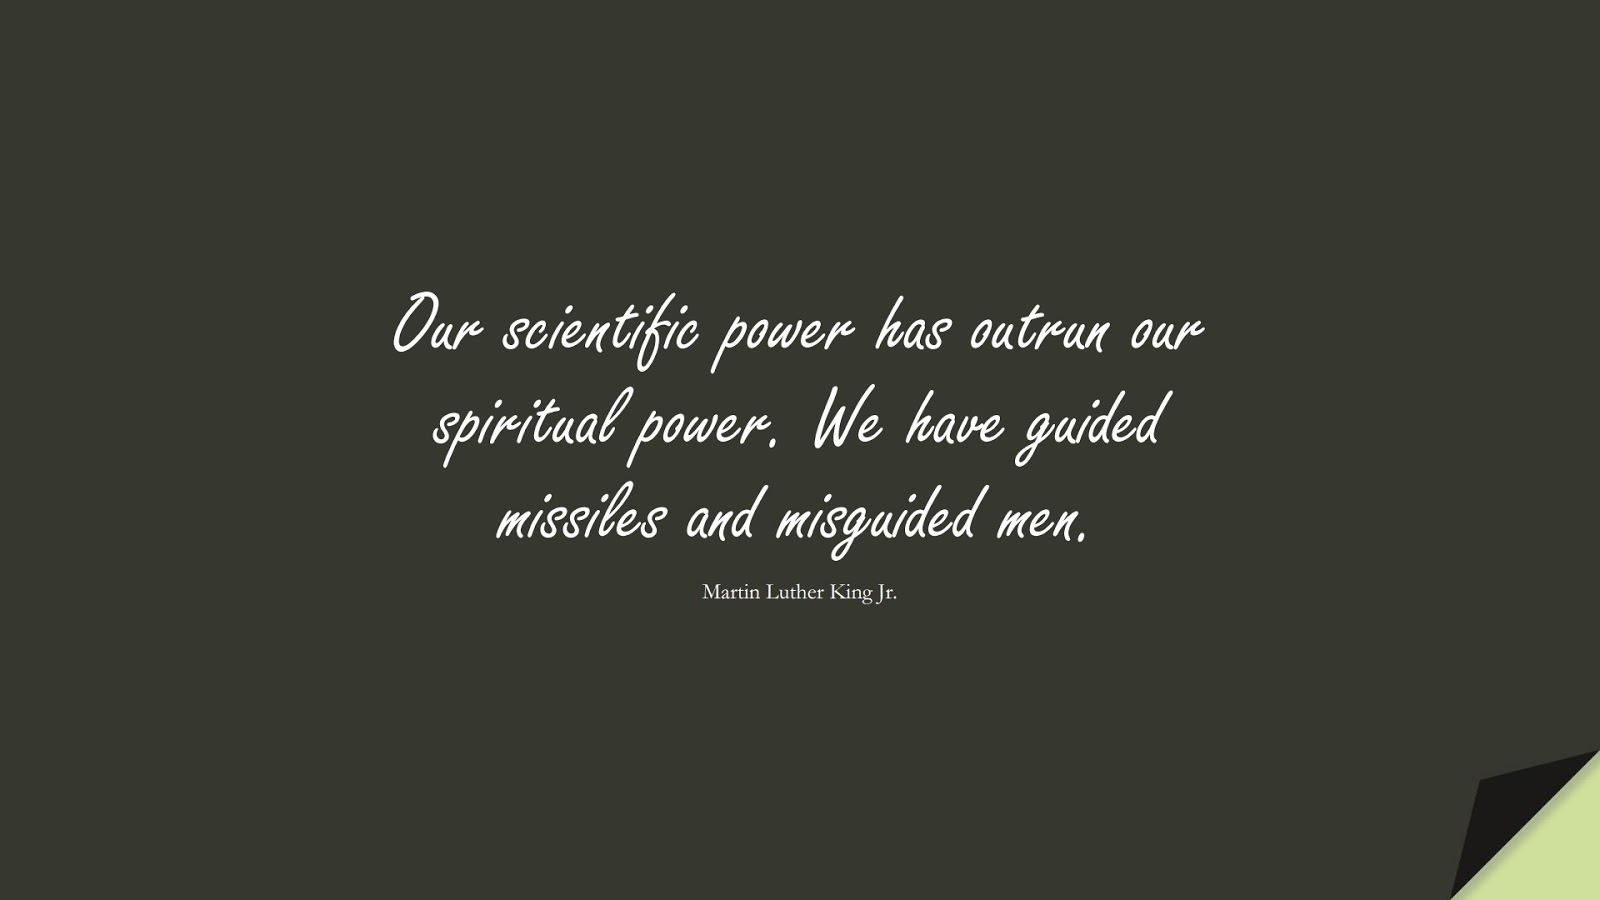 Our scientific power has outrun our spiritual power. We have guided missiles and misguided men. (Martin Luther King Jr.);  #MartinLutherKingJrQuotes